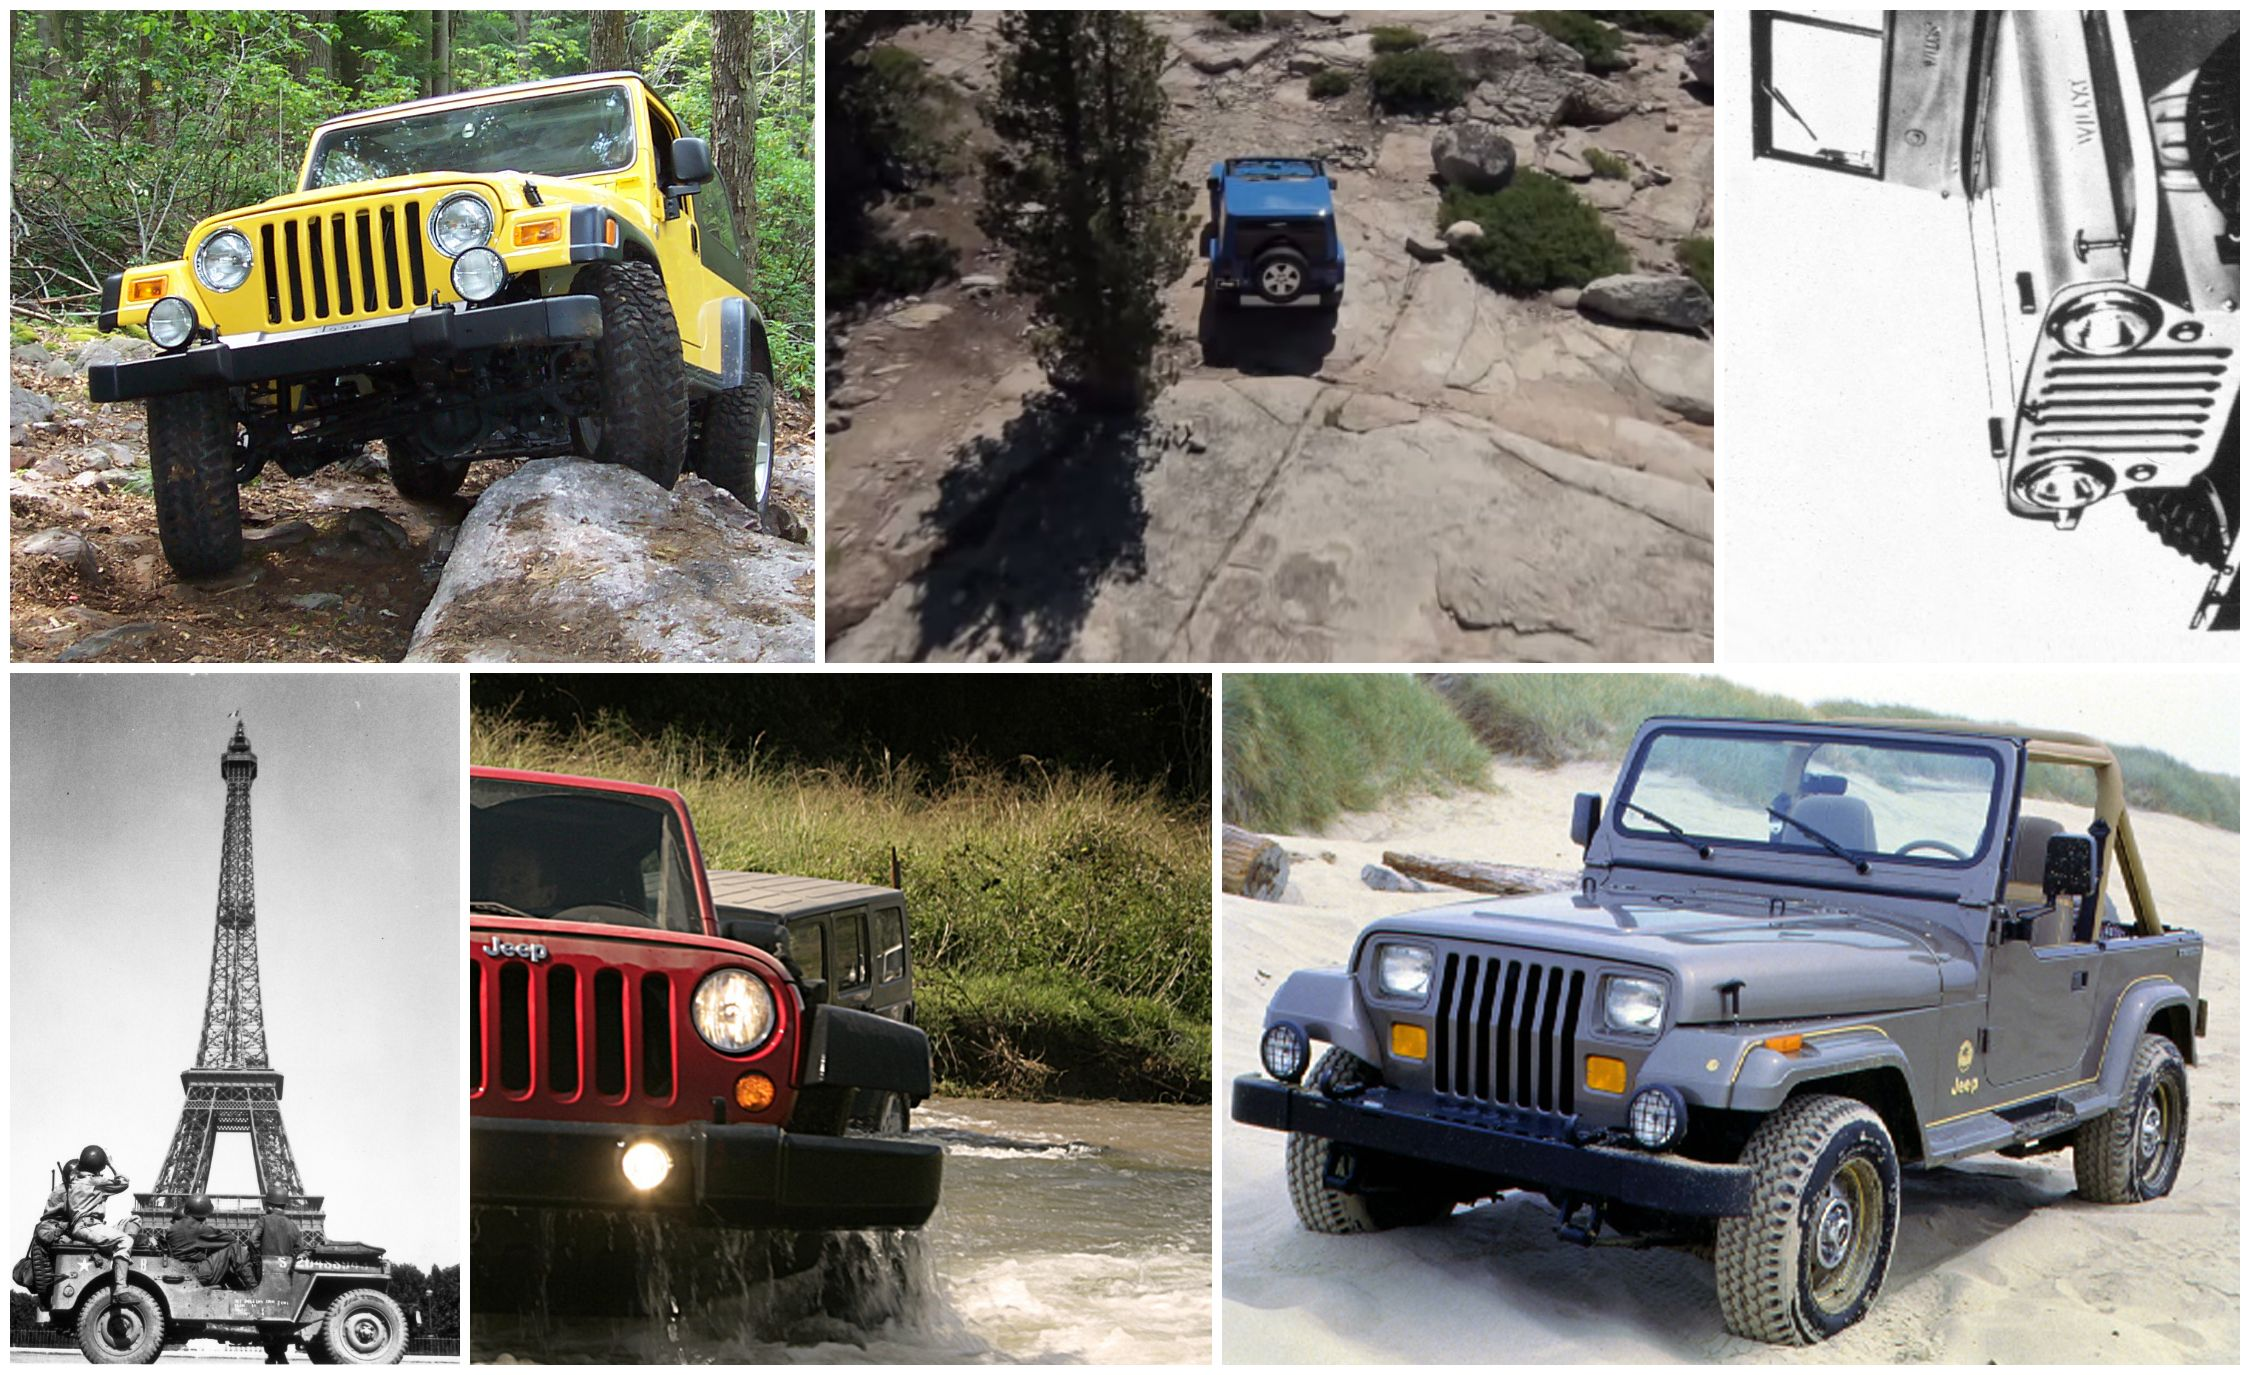 the complete visual history of the jeep wrangler from 1986 to present harness diagram further jeep windshield parts further jeep wrangler yj [ 2250 x 1375 Pixel ]